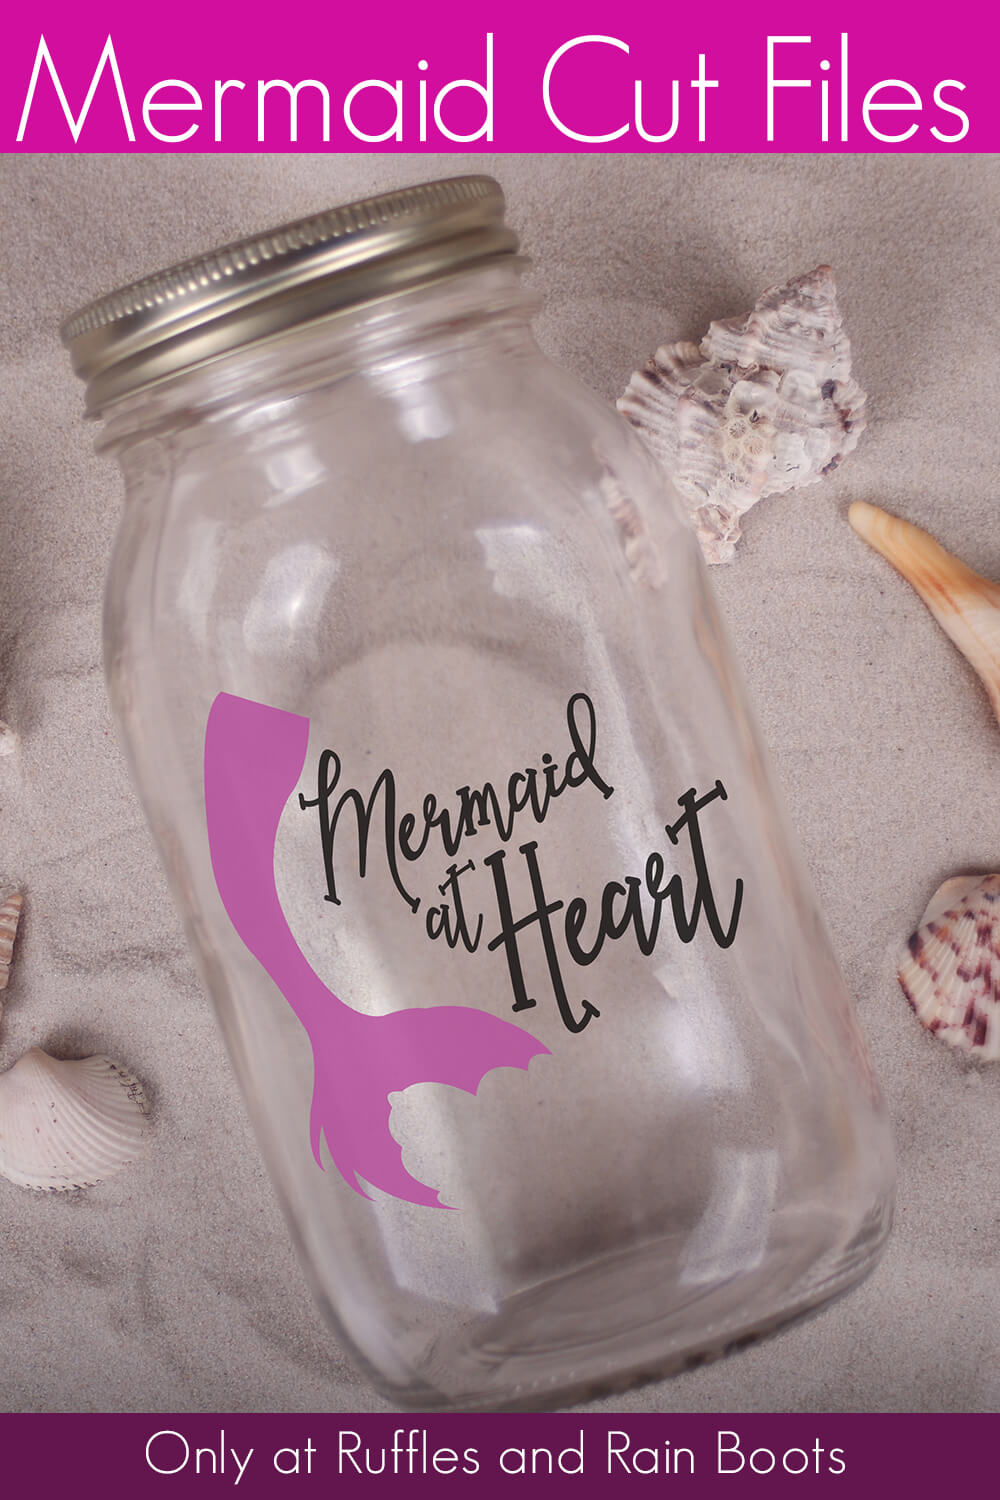 mermaid at heart free mermaid svg for cricut projects on a jar on a bed of sand with sea shells scattered all around with text which reads mermaid cut files